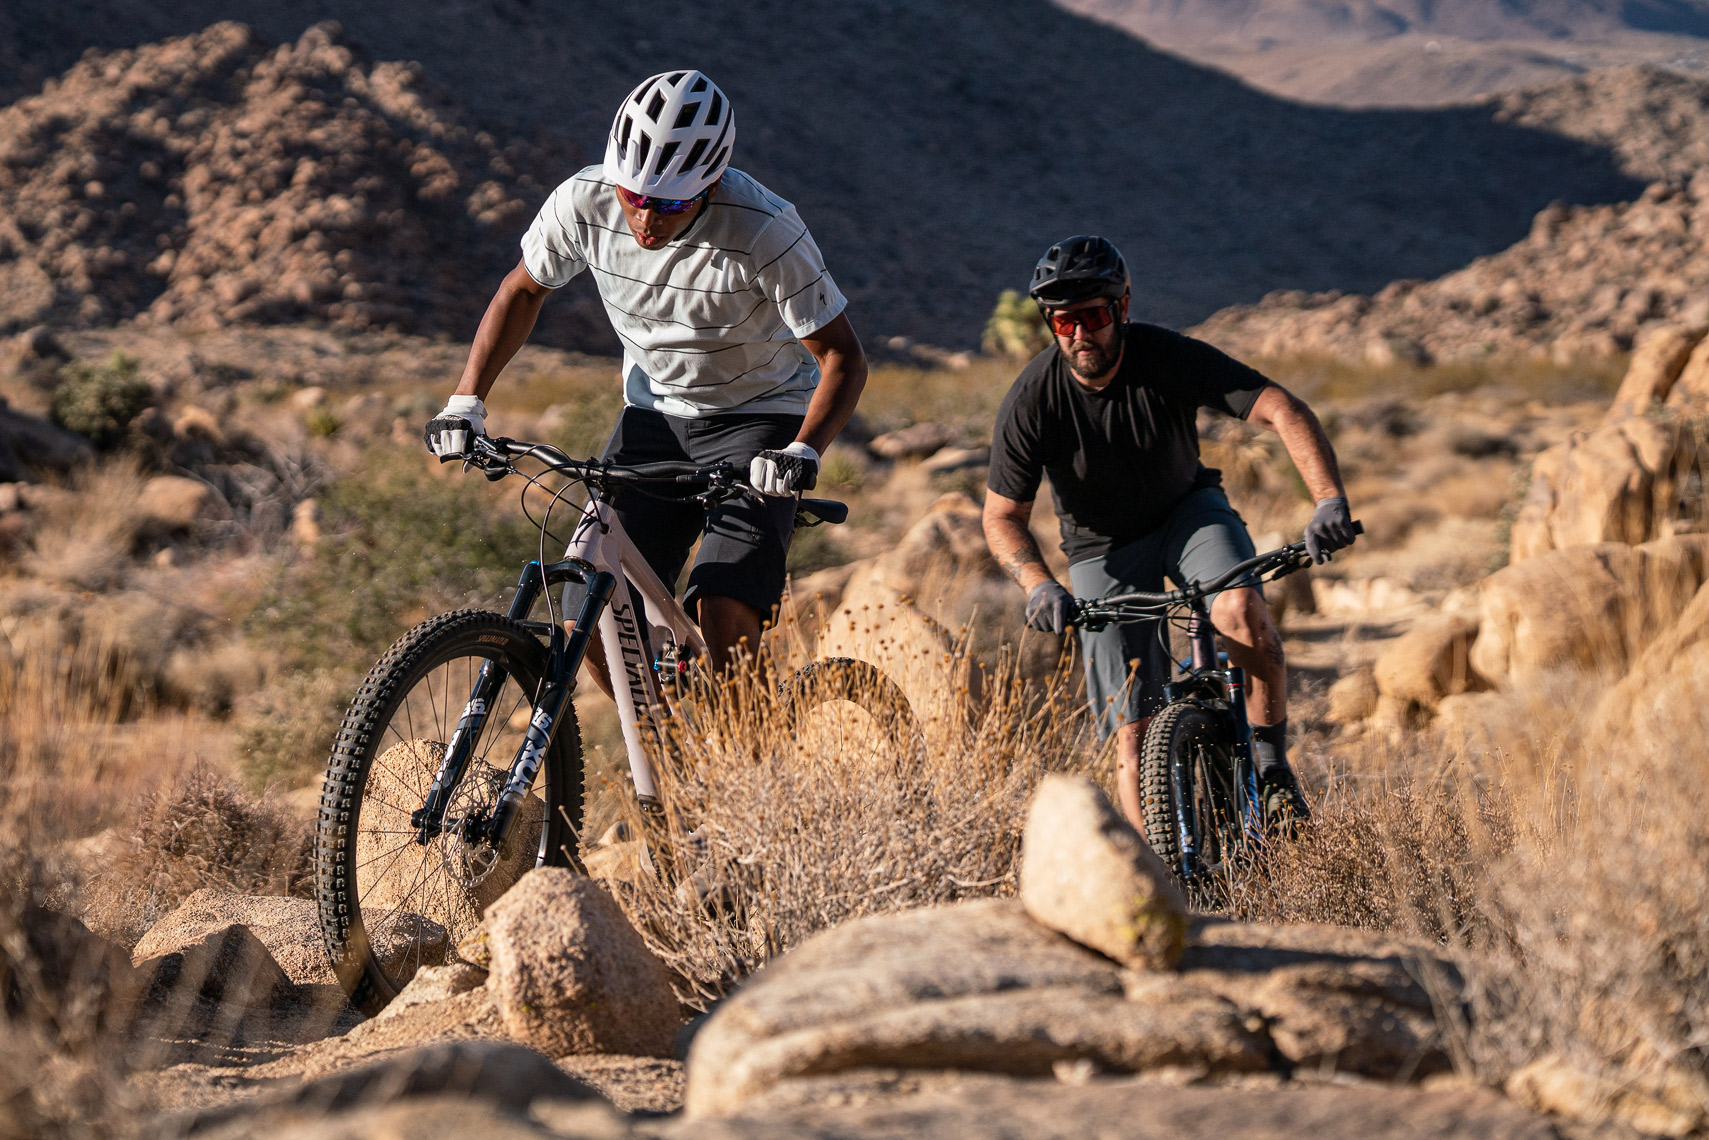 Specialized_S21_MTB_Clothing_Palm_Springs_VanWeelden-73